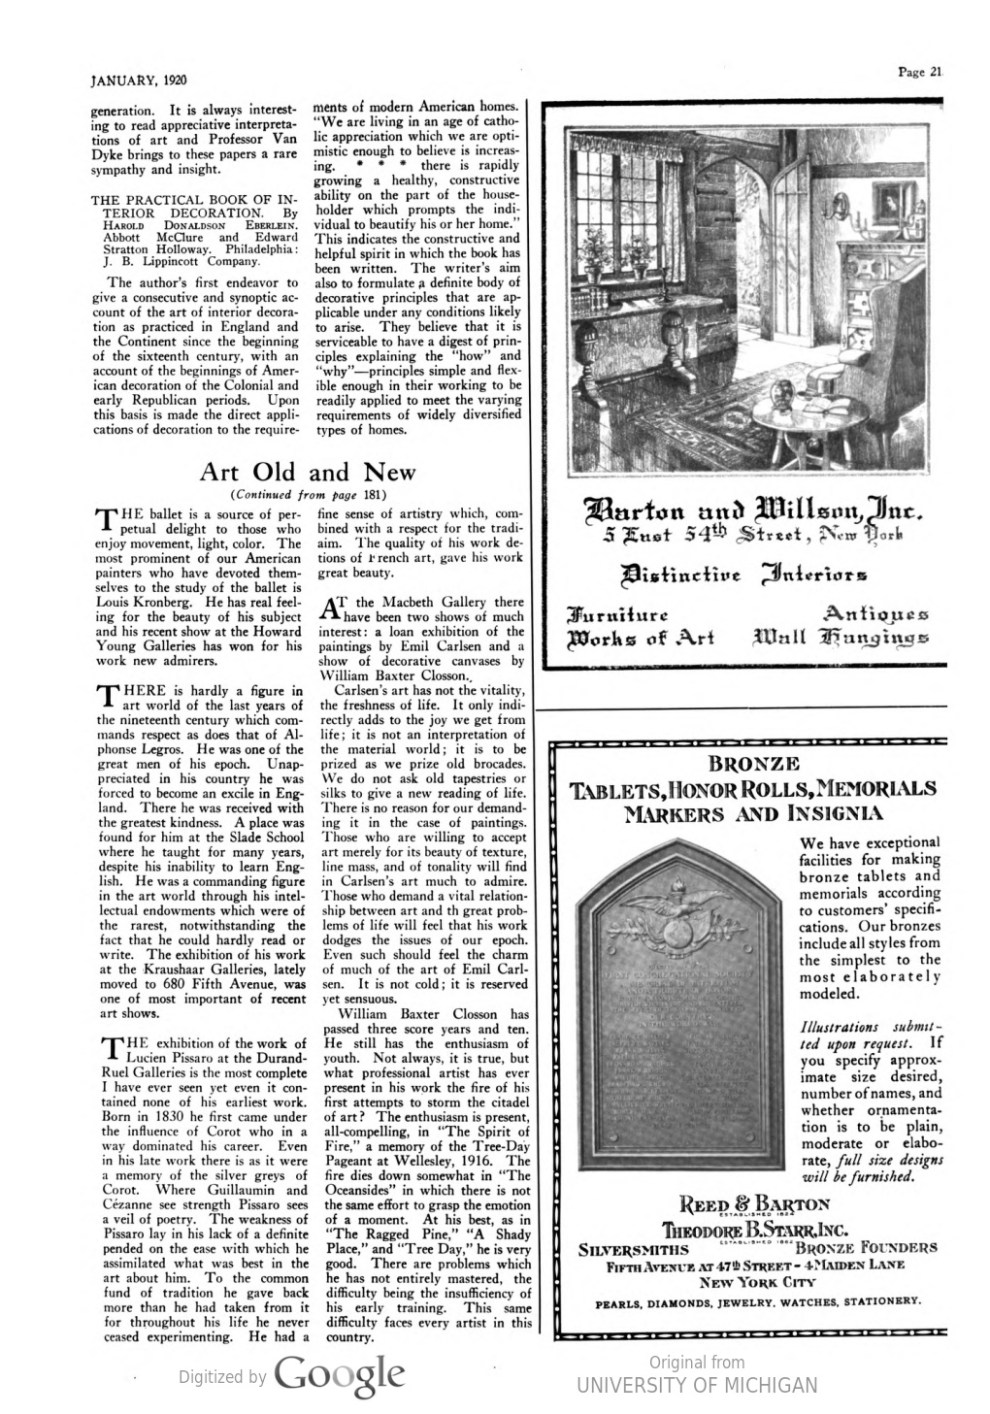 "Arts and Decoration, New York, NY, ""Art old and new in the current shows"" by Hamilton Easter Field, January, 1920, Volume 12, Number 3, illustrated: b&w on page 180"